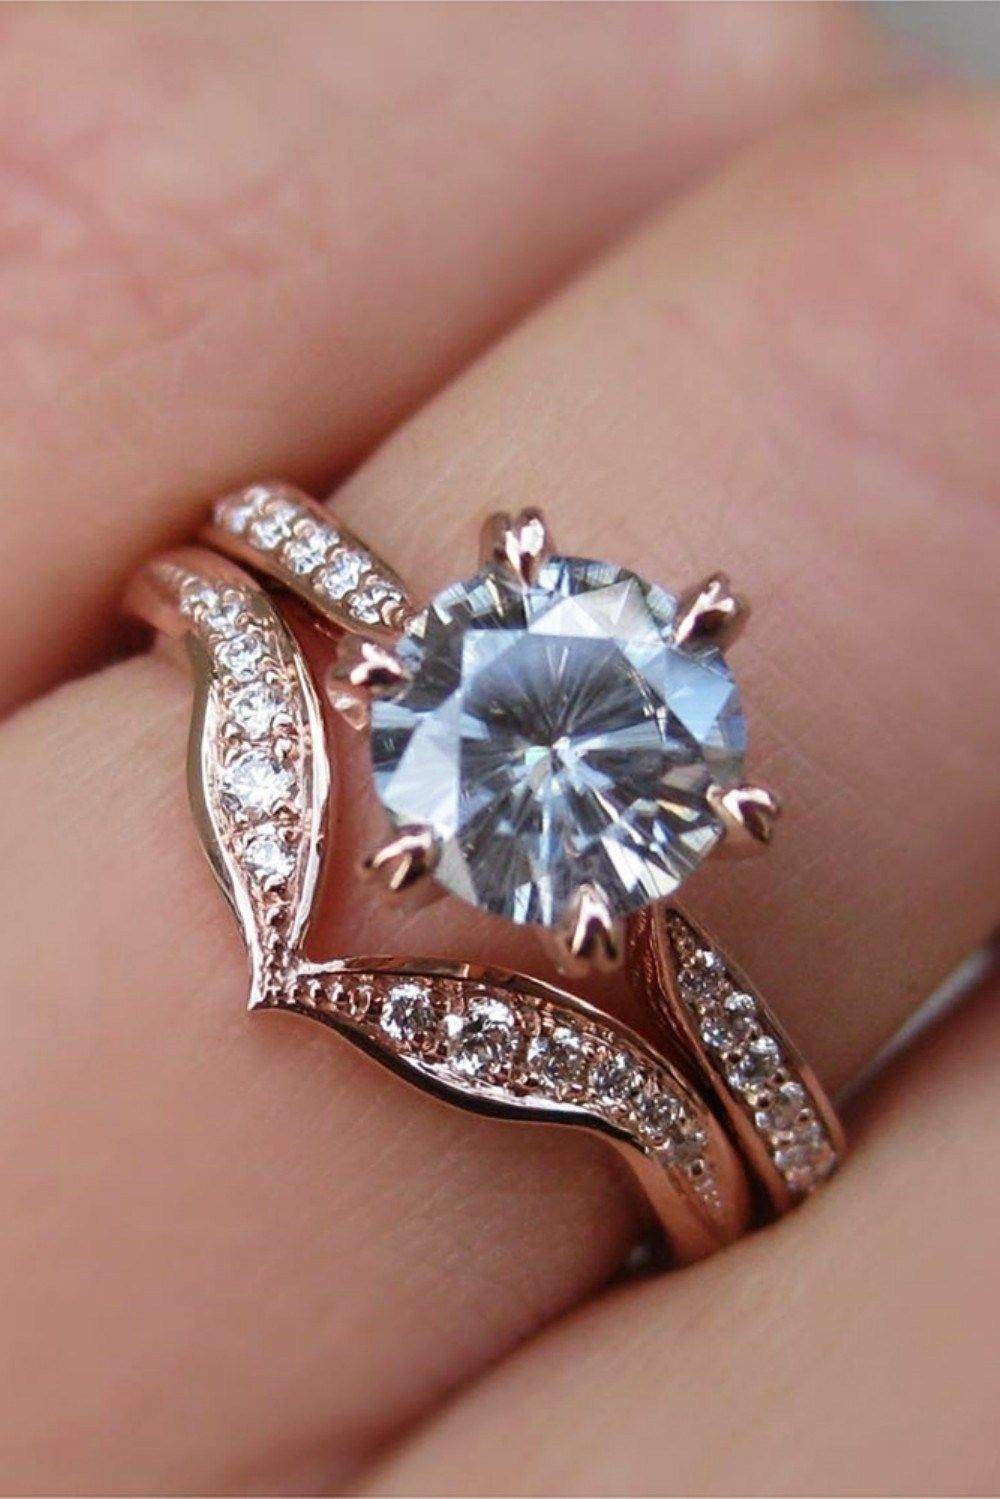 33 Luxury And Glamorous Diamond Wedding Ring For Her Vis Wed Wedding Ring Sets Wedding Rings Unique Unique Engagement Rings